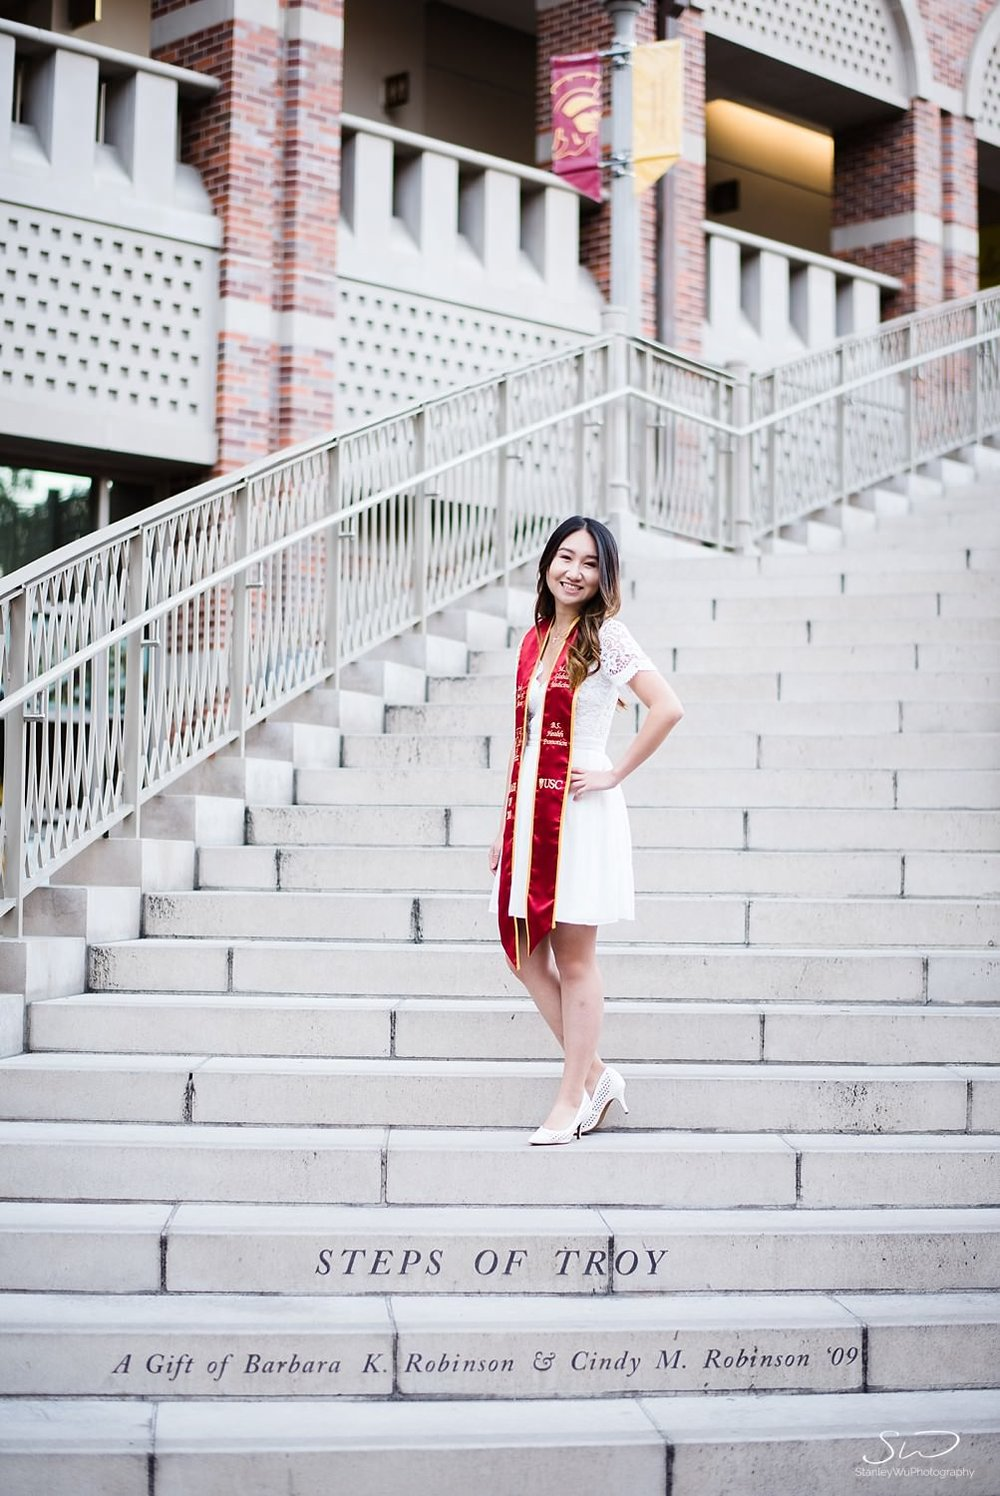 Steps of Troy at USC | Los Angeles Orange County Senior Portrait & Wedding Photographer